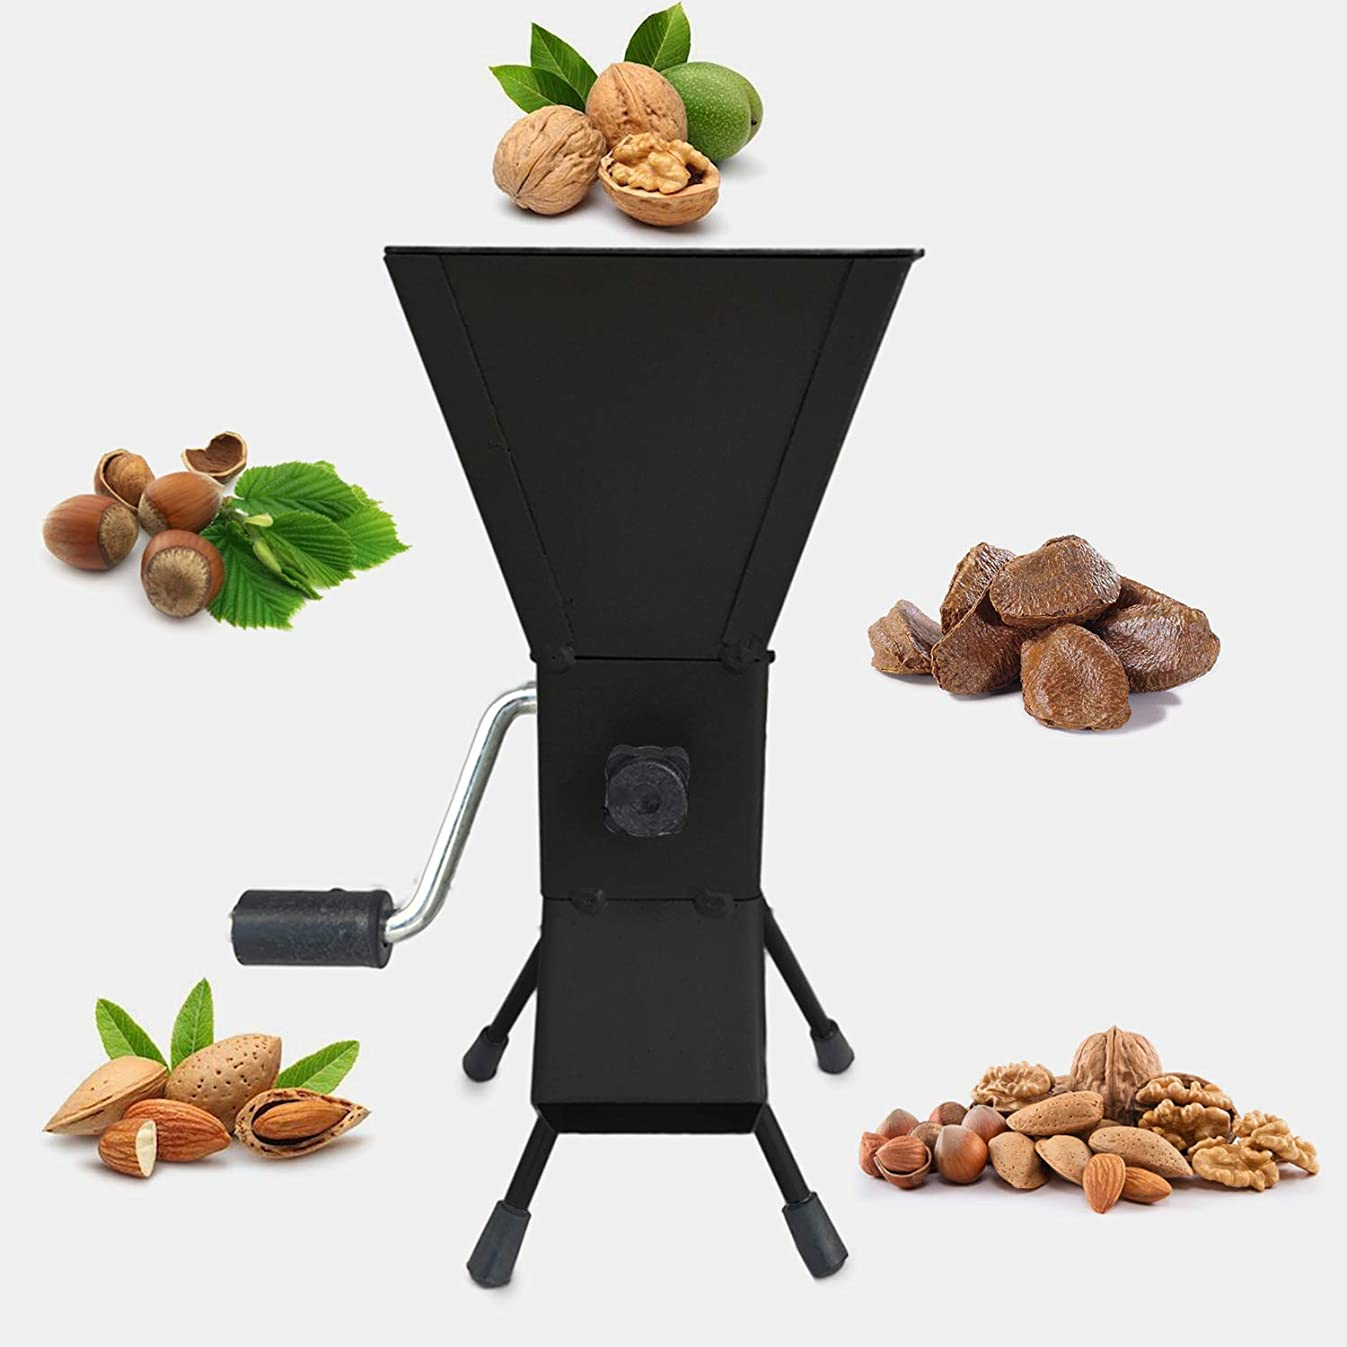 YARN STORY Hand Crank Nutcracker Tool for Pecans (Soft Shell), Almonds, Hazelnuts, Filbert Nuts, Brazil Nuts, Pistachios and English Walnuts. All Steel Nut Cracker Machine - Nutcracker Tool (Black)